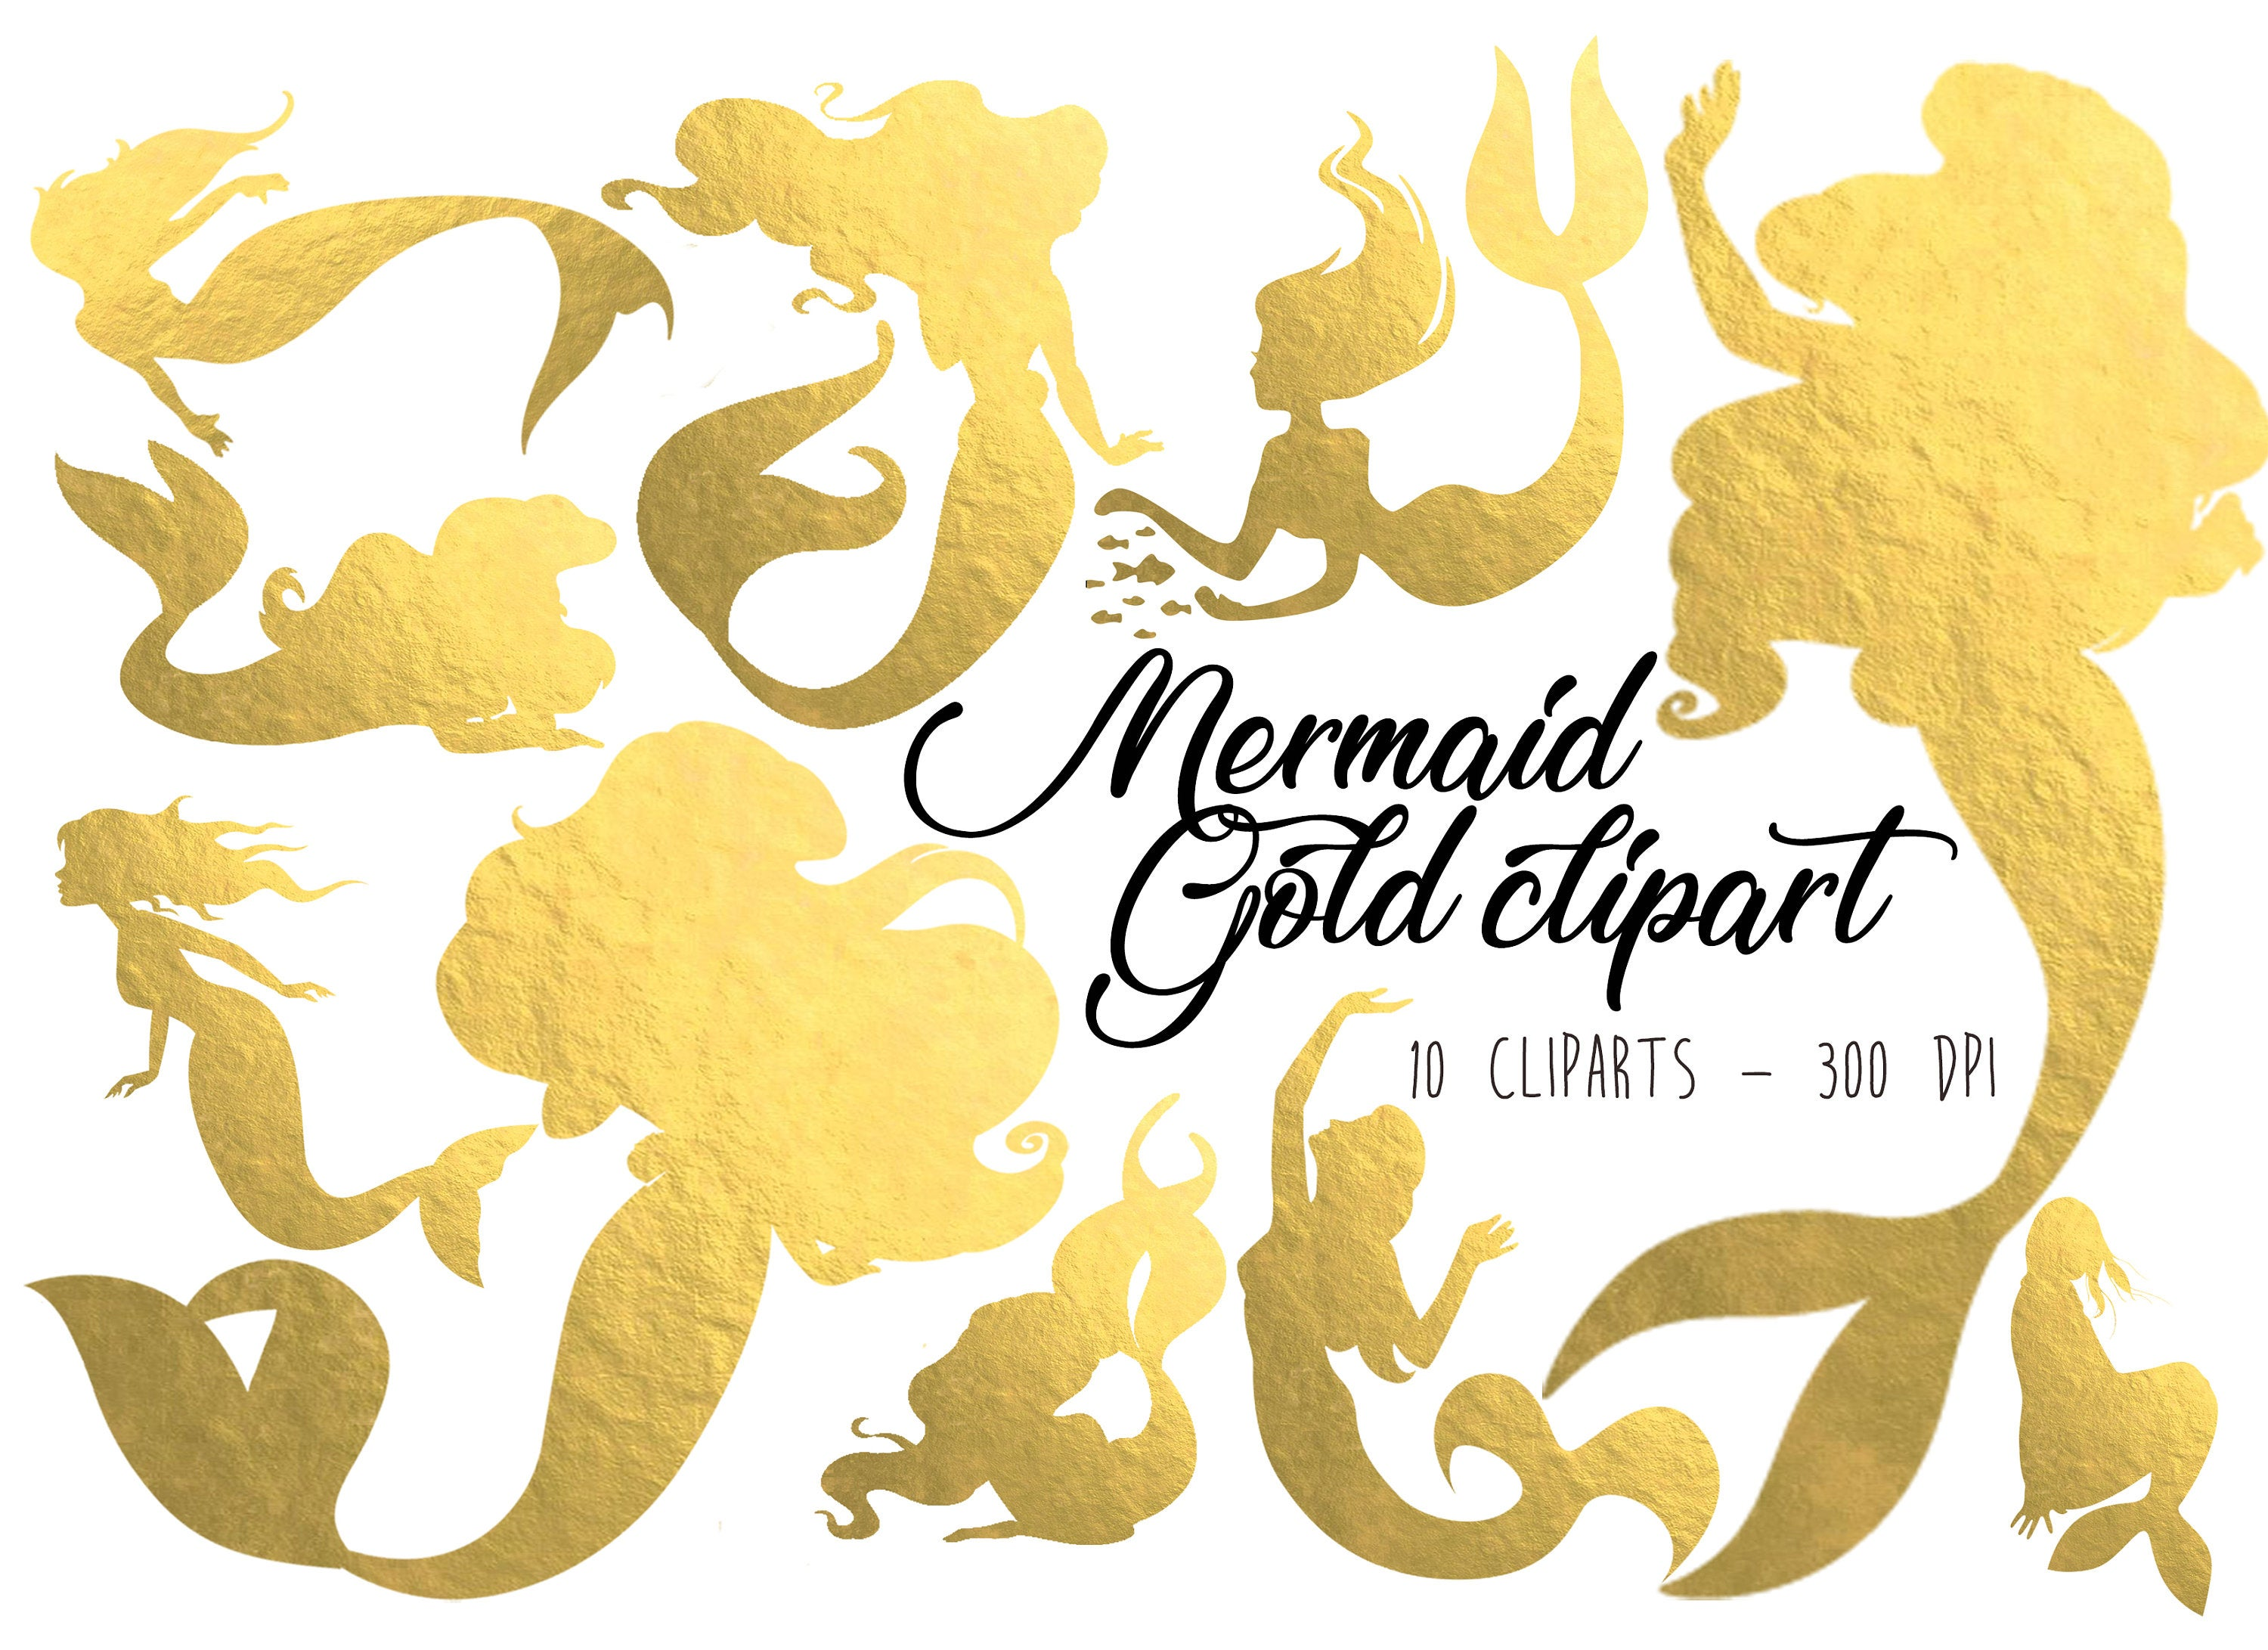 Mermaid Clipart Gold Mermaid clip art Gold Foil Mermaid clipart Mermaid  graphics Mermaid illustration Gold clipart PNG Mermaid elements gold.